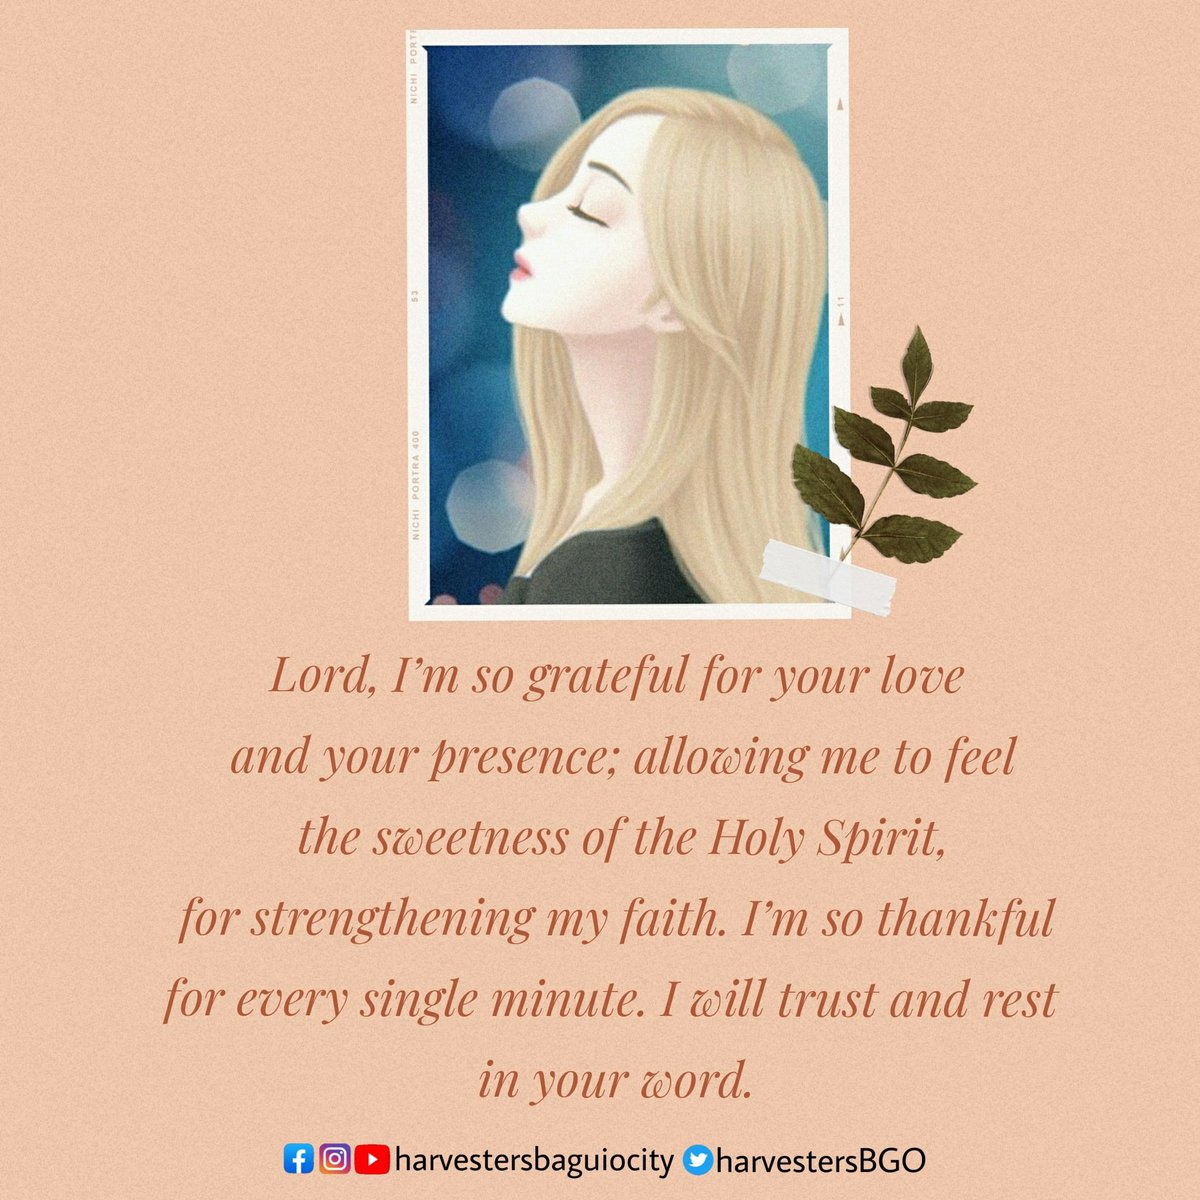 Lord, I'm so grateful for your love and your presence; allowing me to feel the sweetness of the Holy Spirit, for strengthening my faith. I'm so thankful for every single minute. I will trust and rest in your word.  #POTD ( Prayer of the Day ) pic.twitter.com/hIKVSToVk5